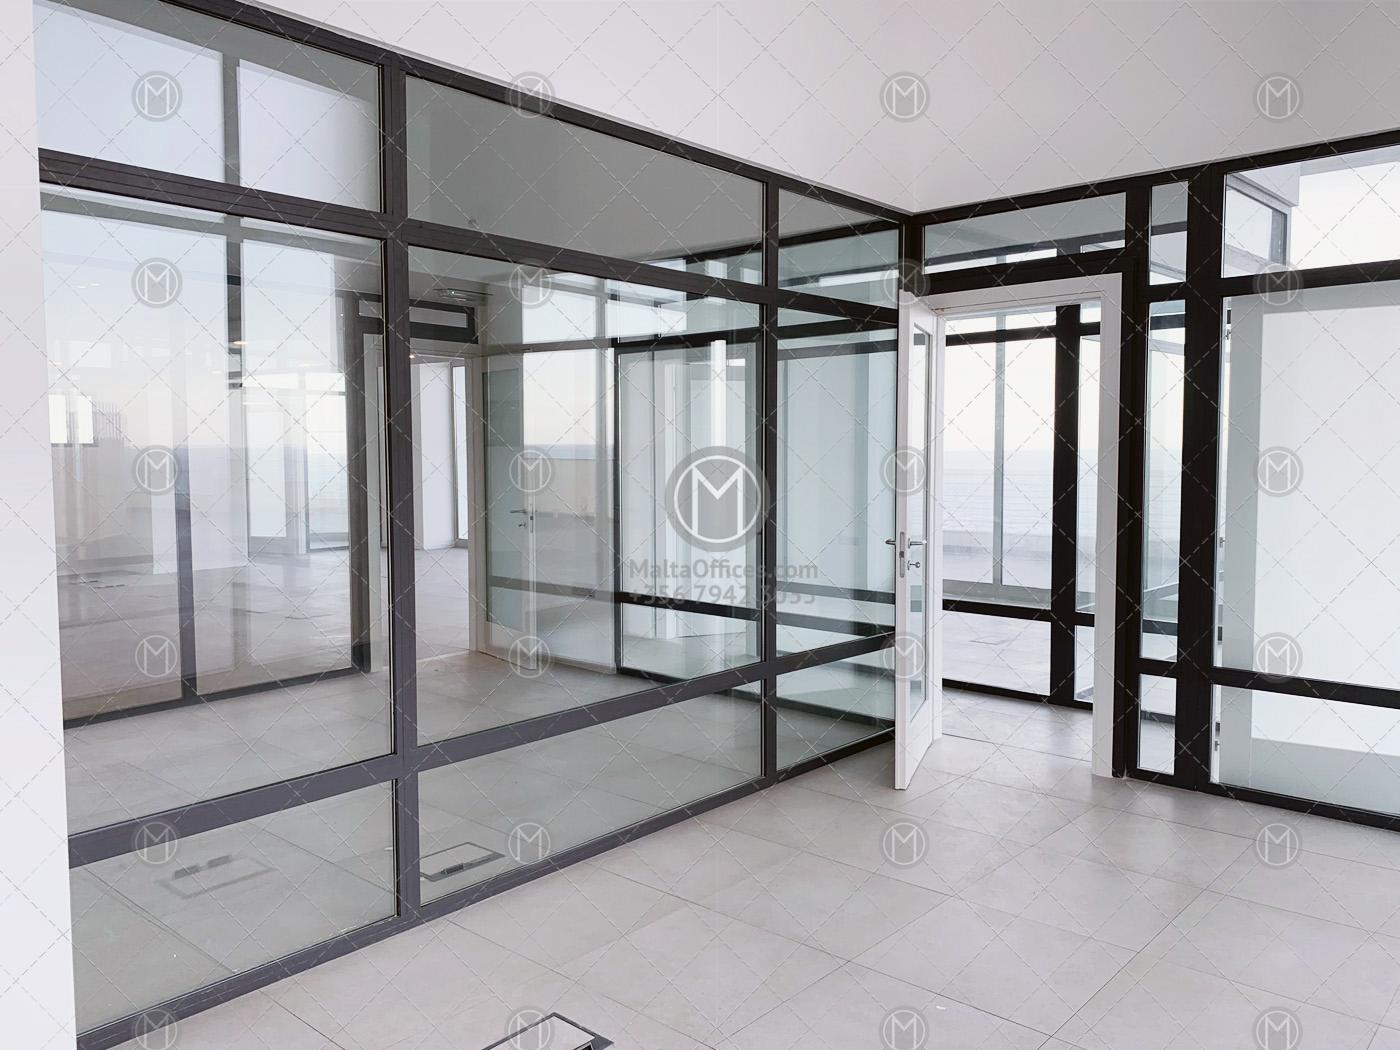 Seafront Office for Rent in Sliema (231m2)